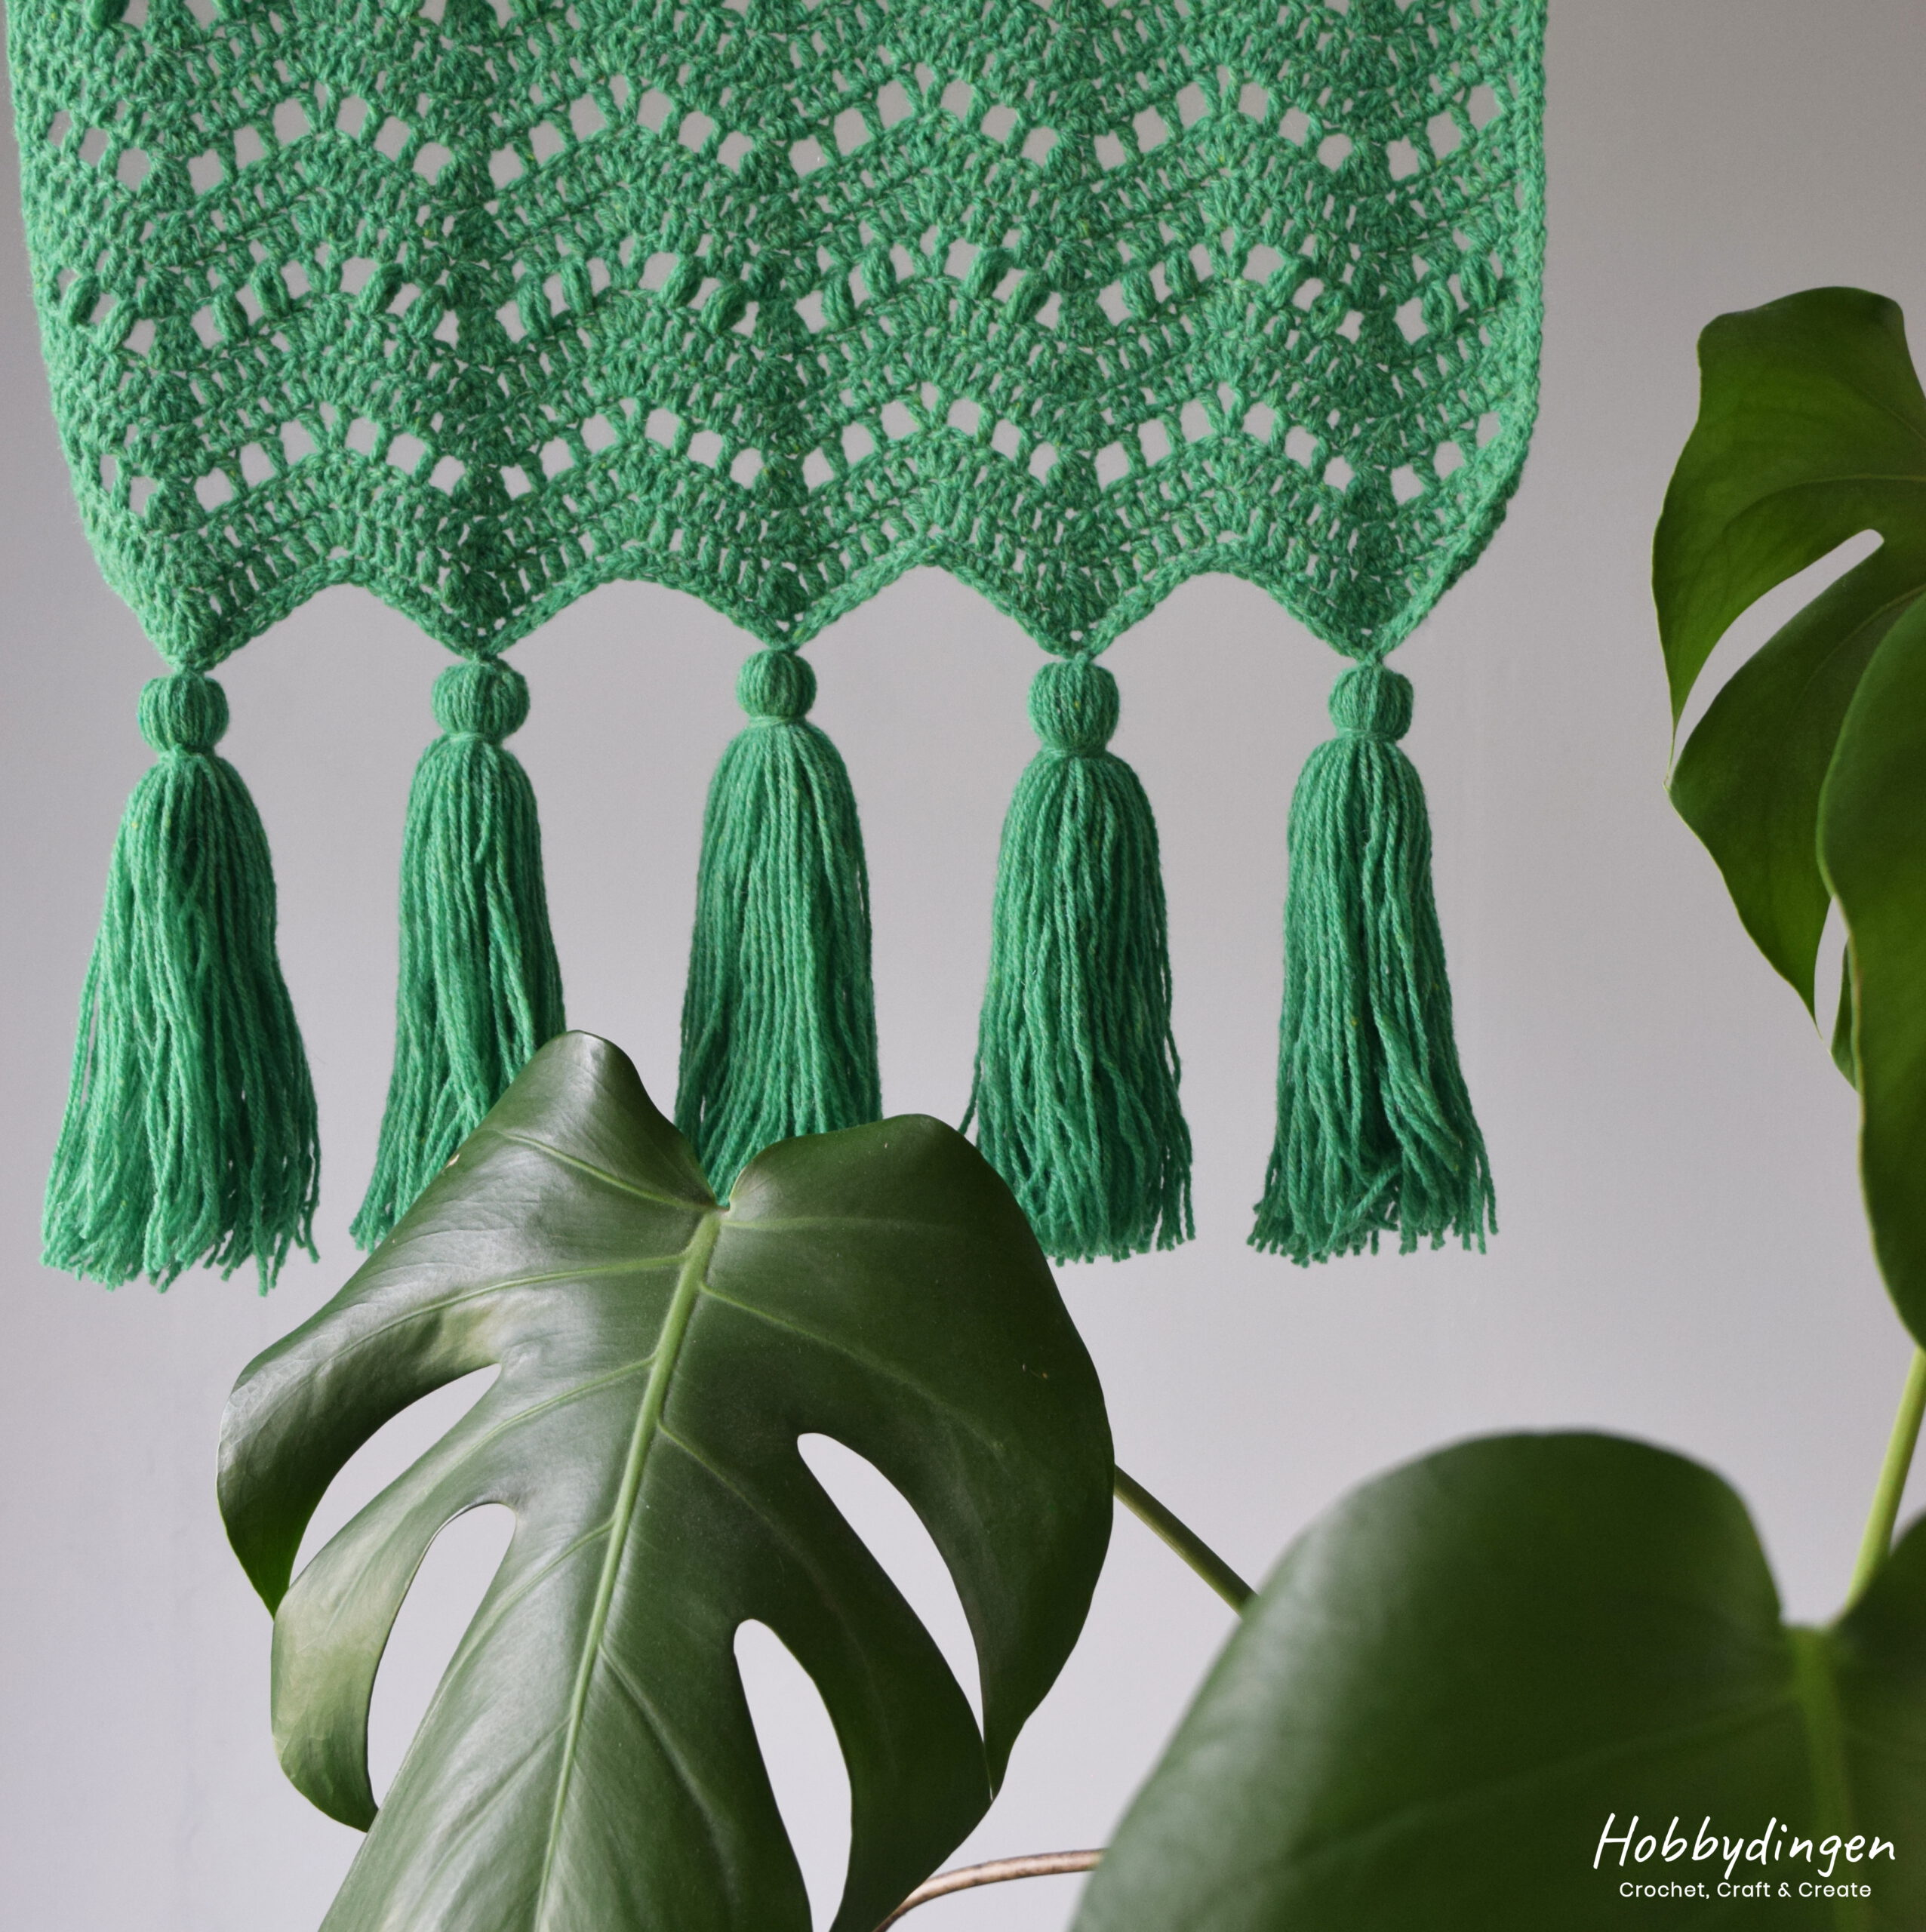 Crochet Pattern Chevron Wall Hanging With Tassels and different crochet stitches - Hobbydingen.com